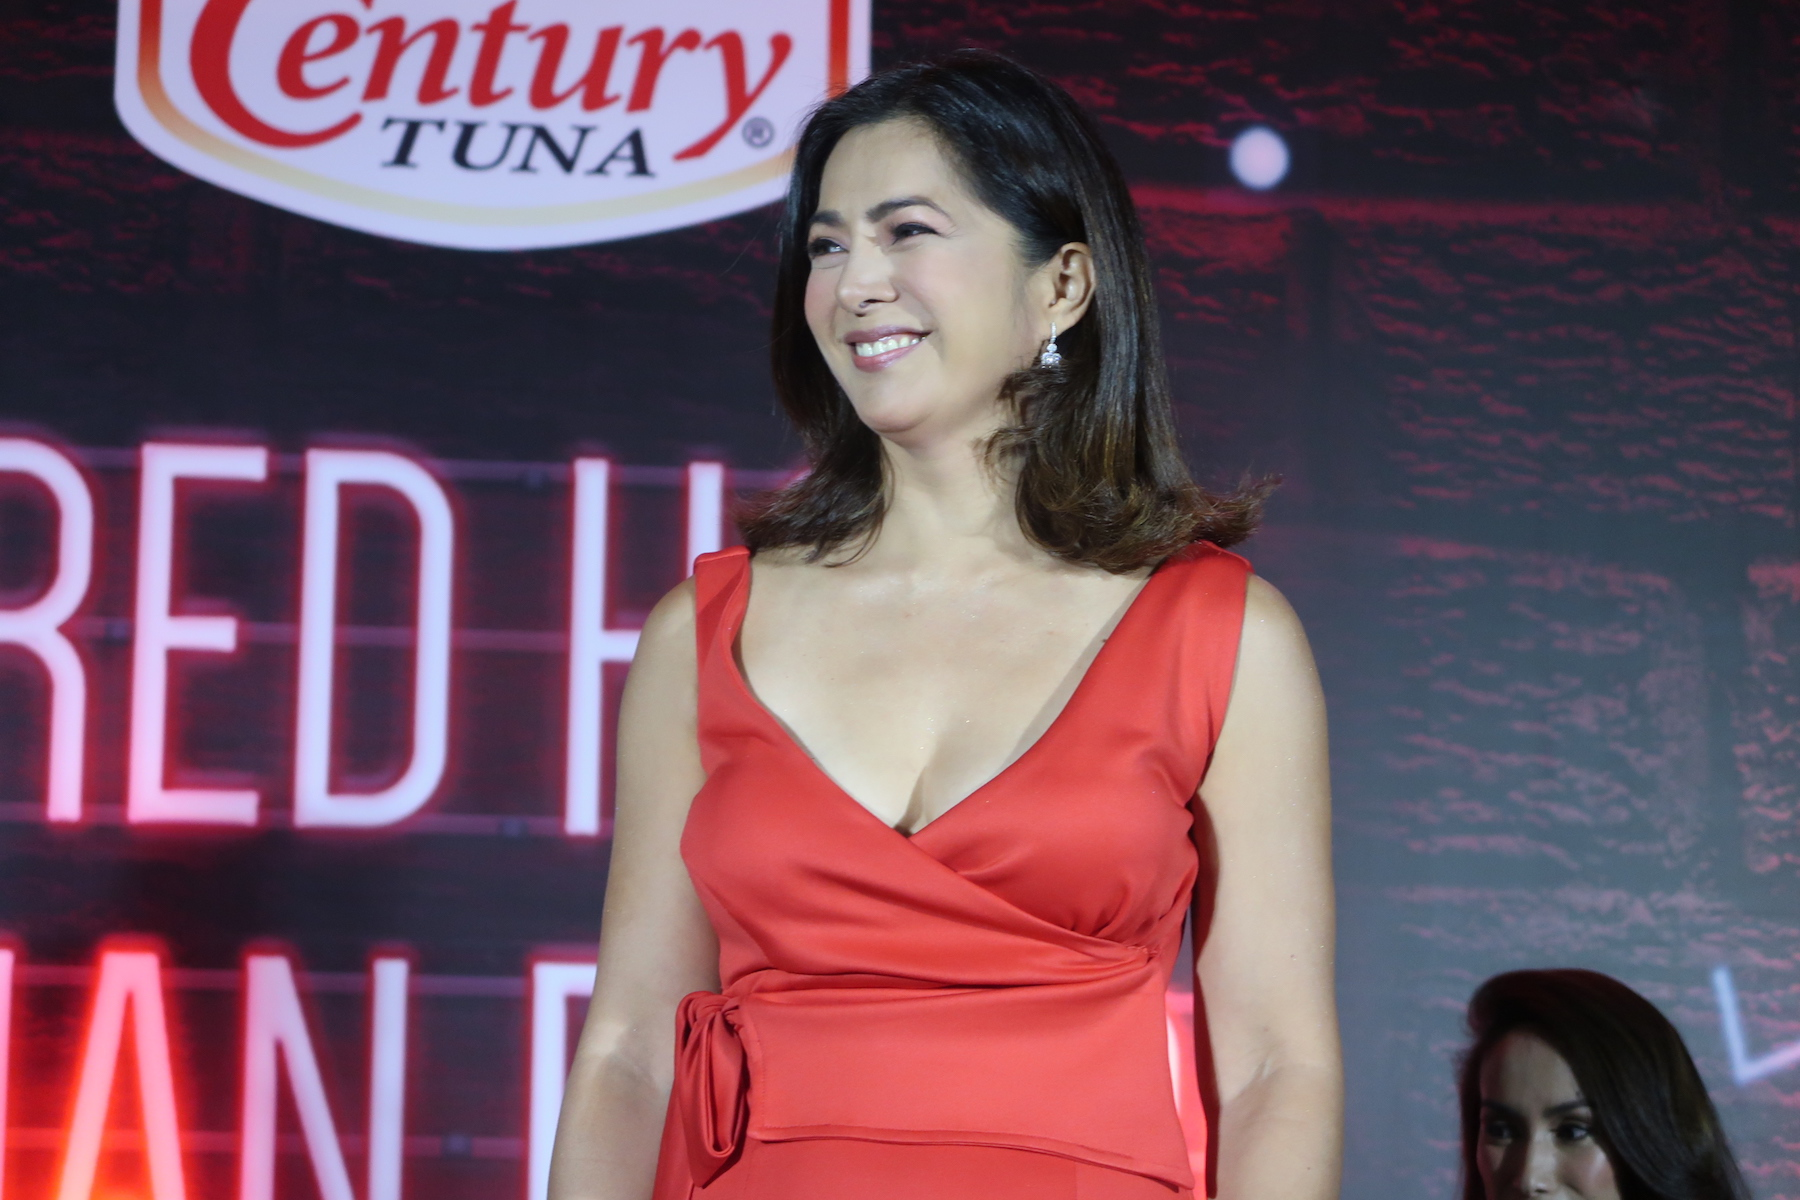 OVERCOMING PERSONAL ISSUES. Alice Dixson says a positive mind is very important to a healthy lifestyle. File photo by Precious del Valle/Rappler